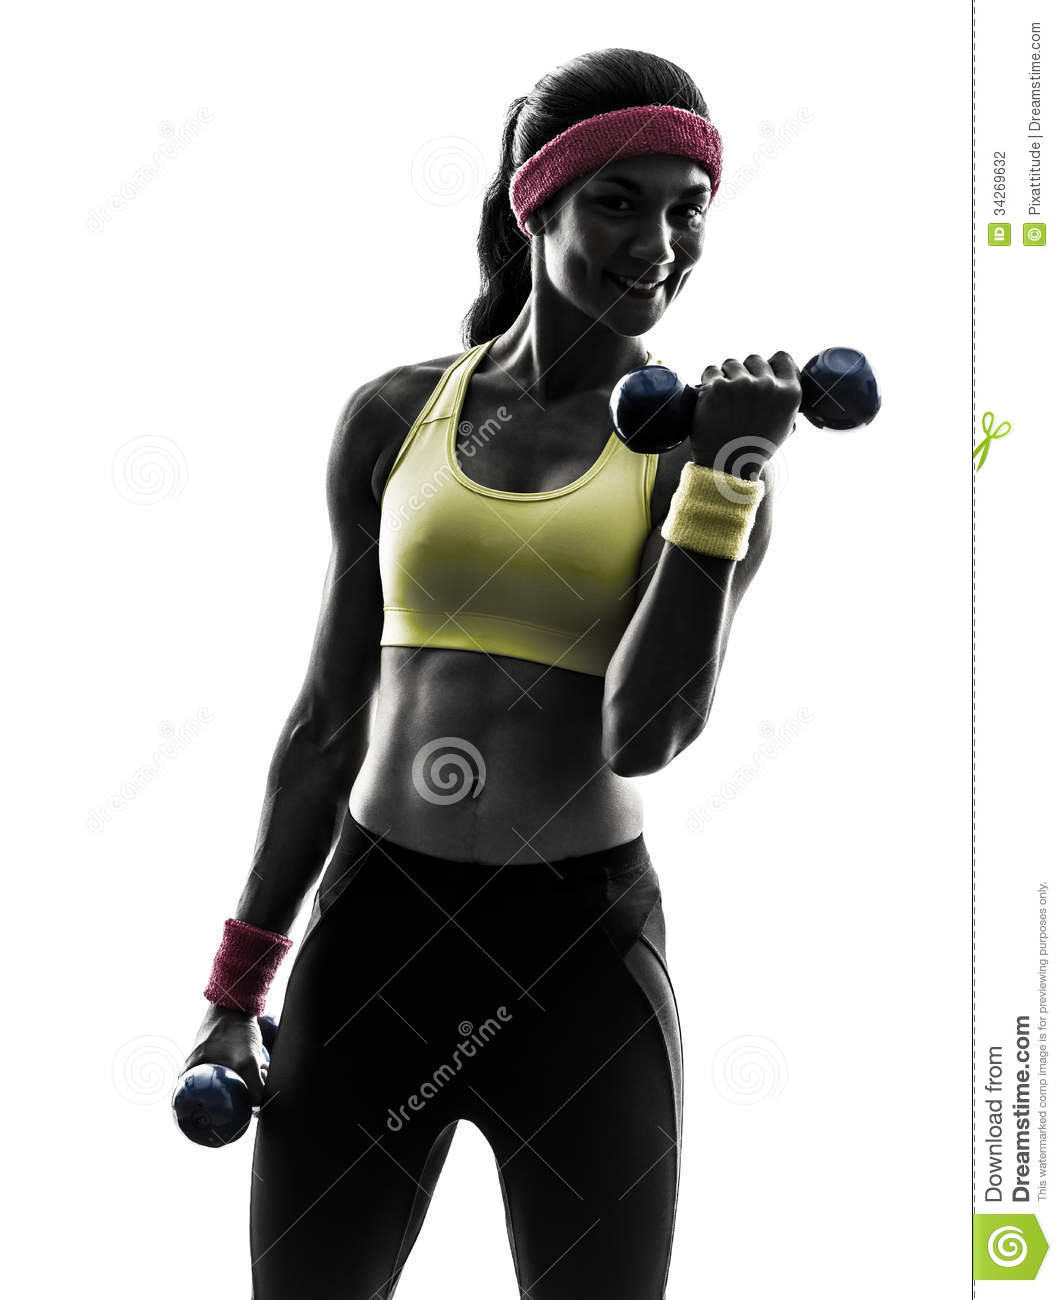 Workout Photography: Woman Exercising Fitness Workout Weight Training